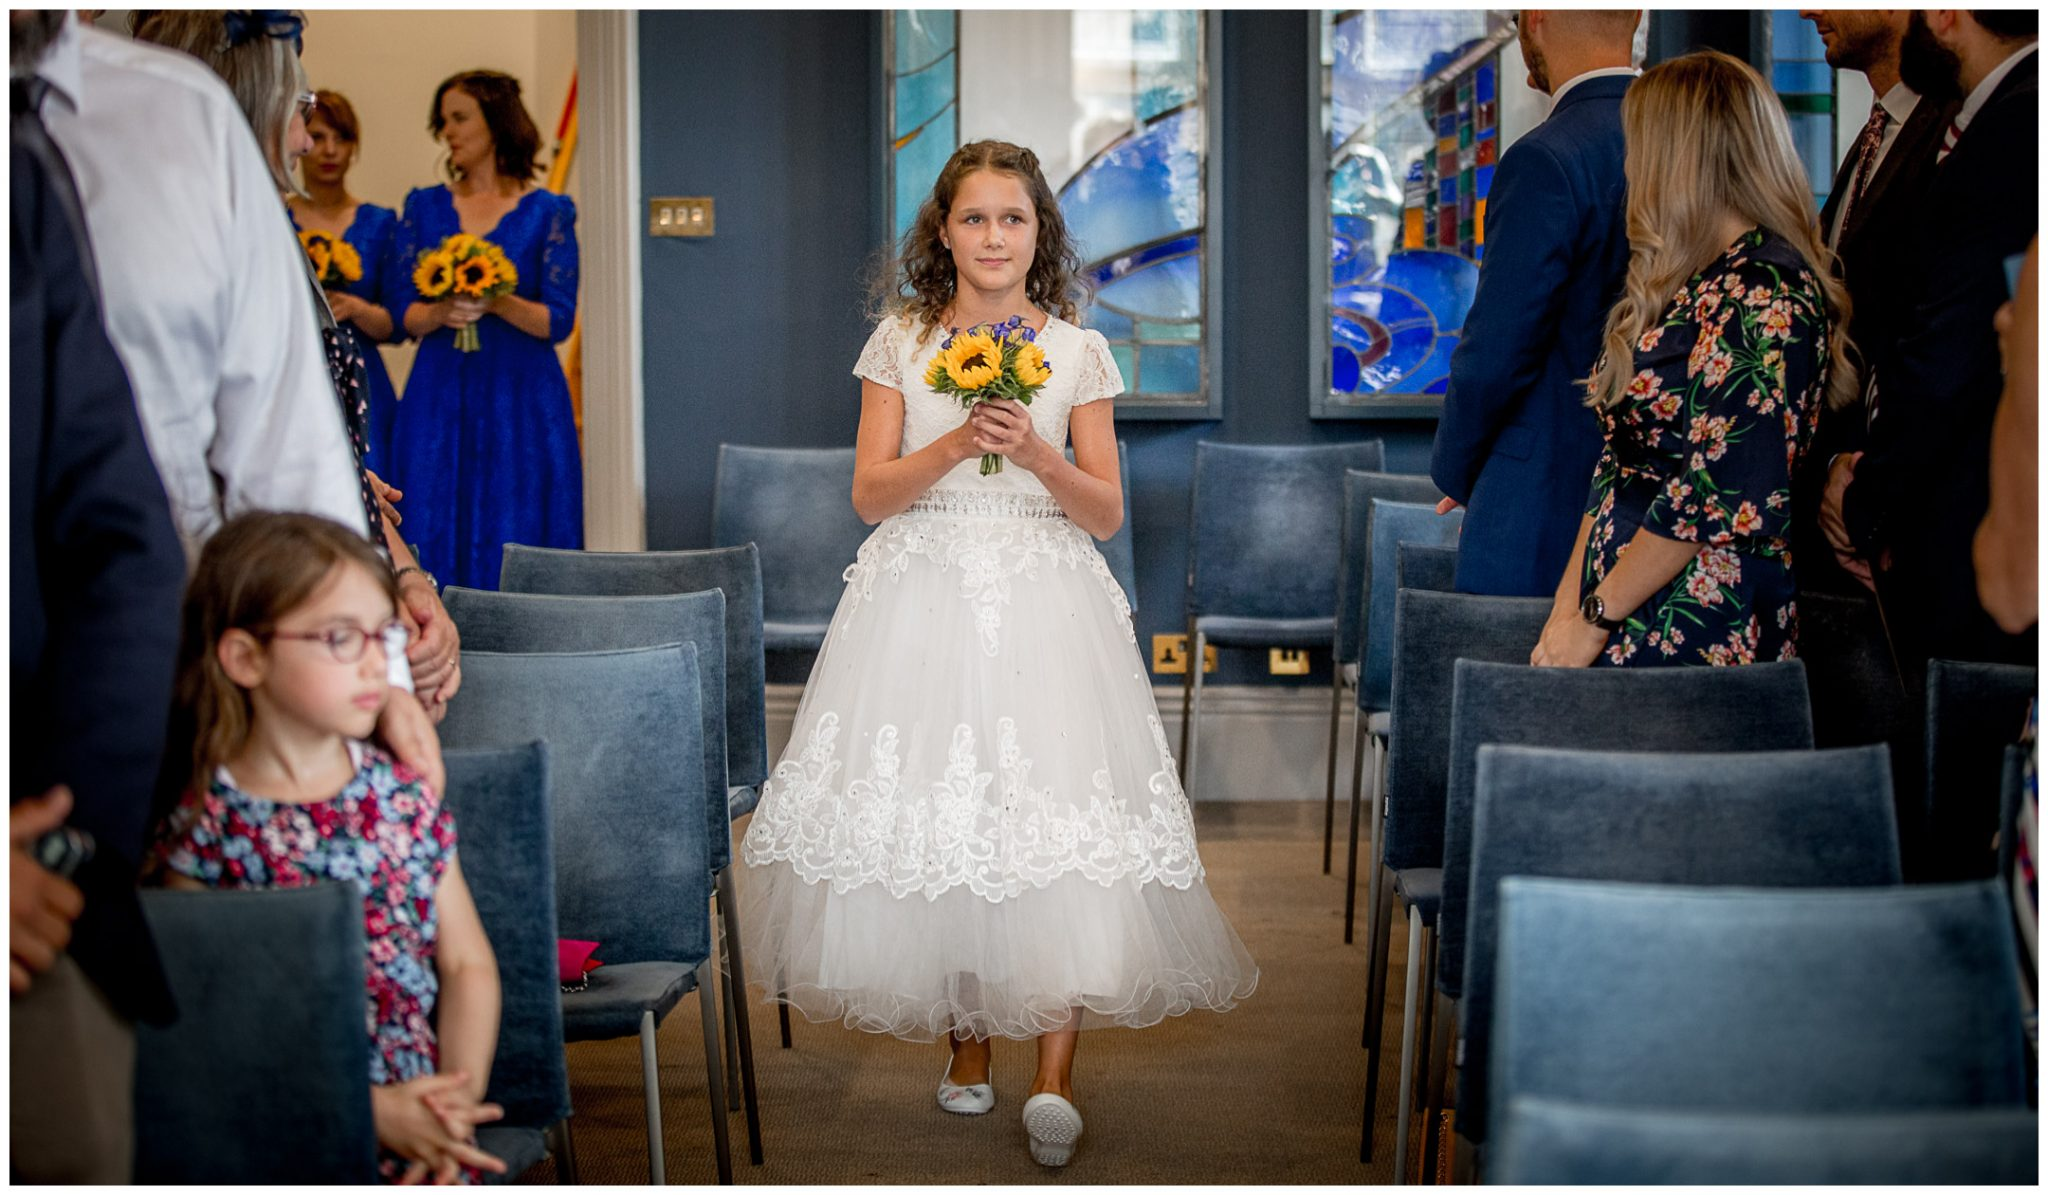 The flower girl walks down the aisle